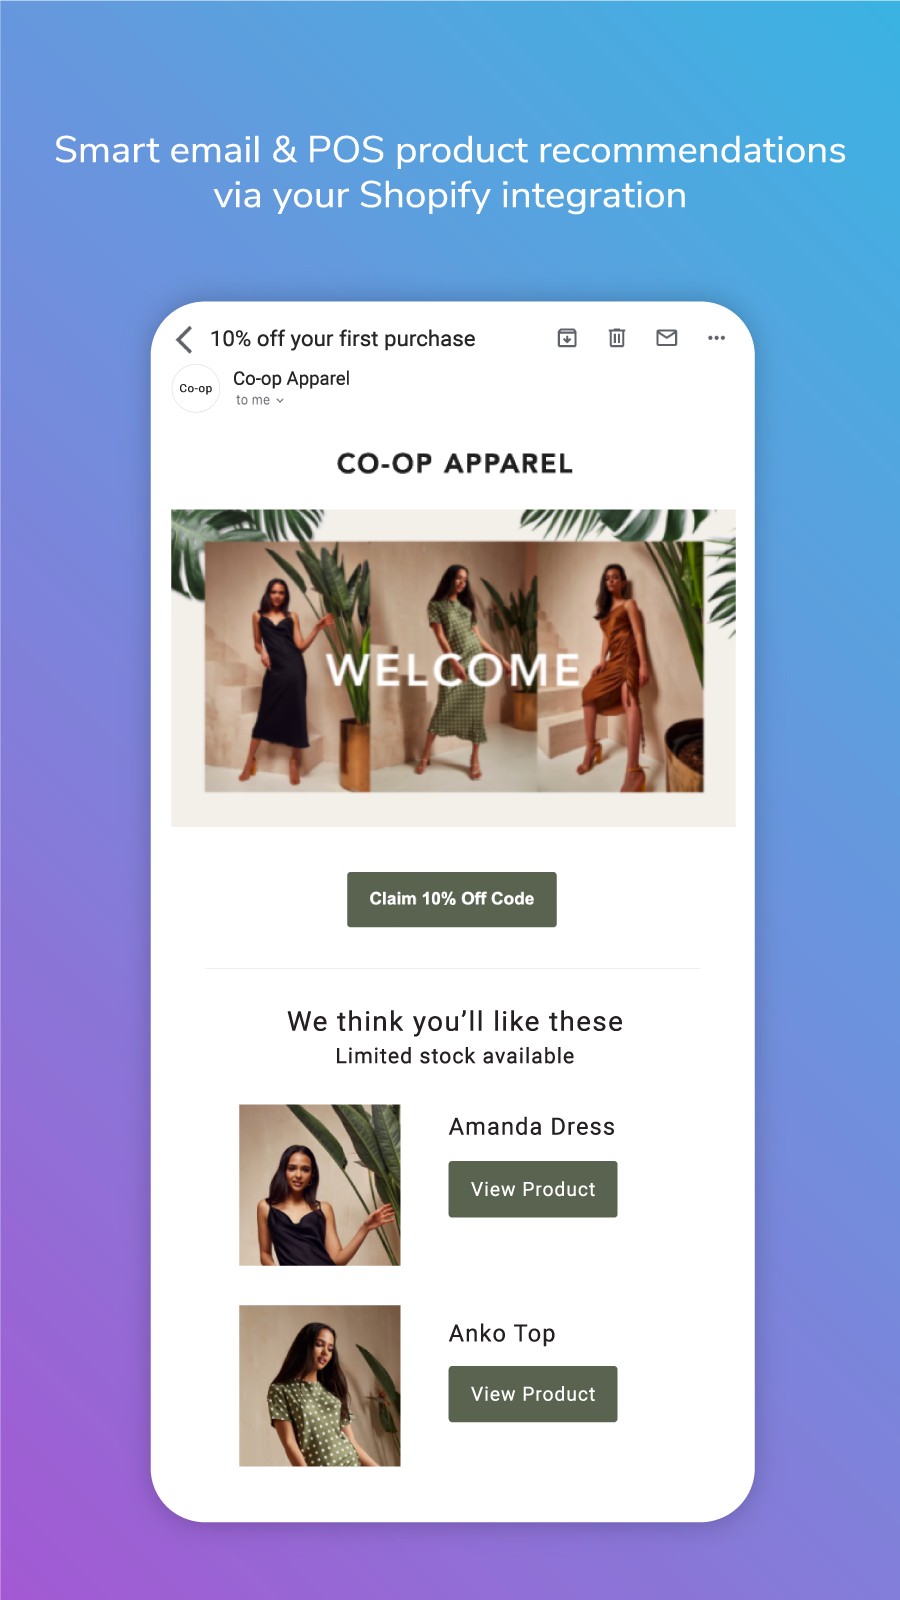 An email from Co-Op Apparel featuring product recommendations